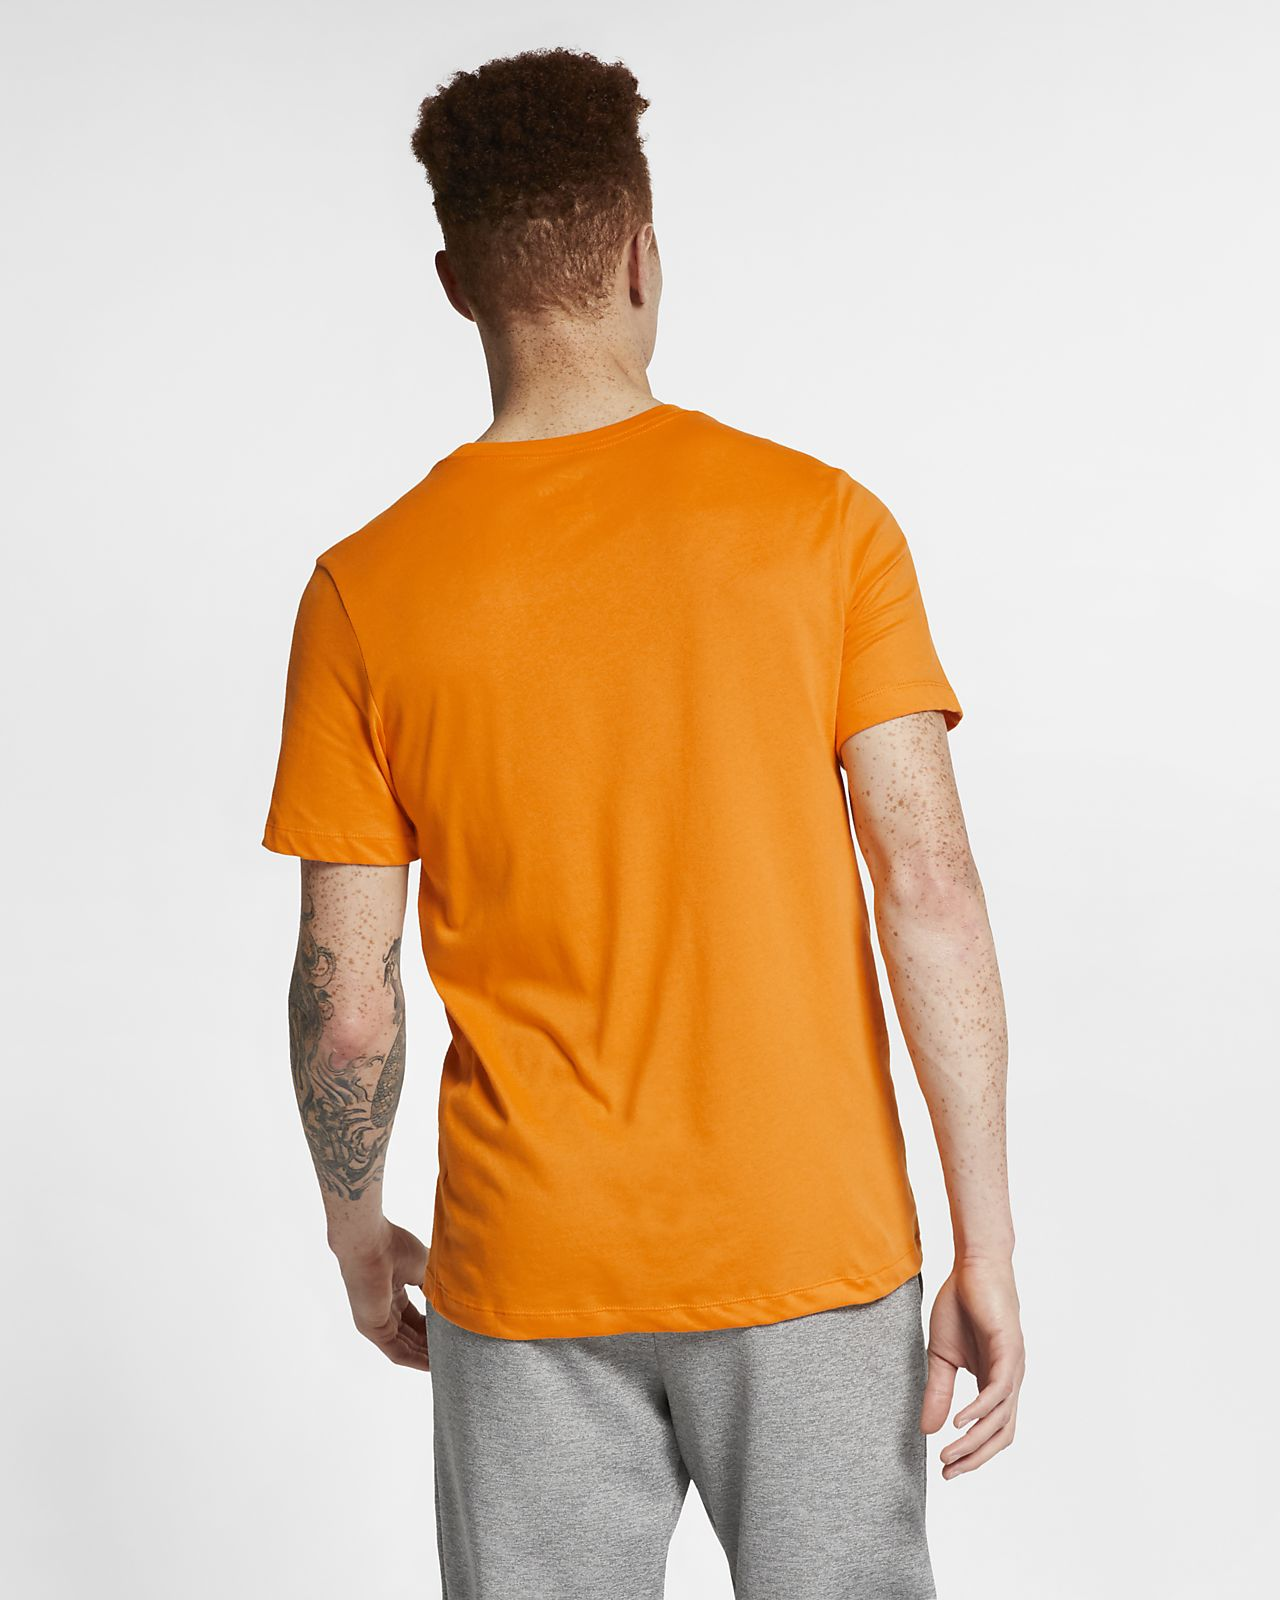 Clothing, Shoes & Accessories Efficient Nike Training T-shirt Drifit Orange Peel